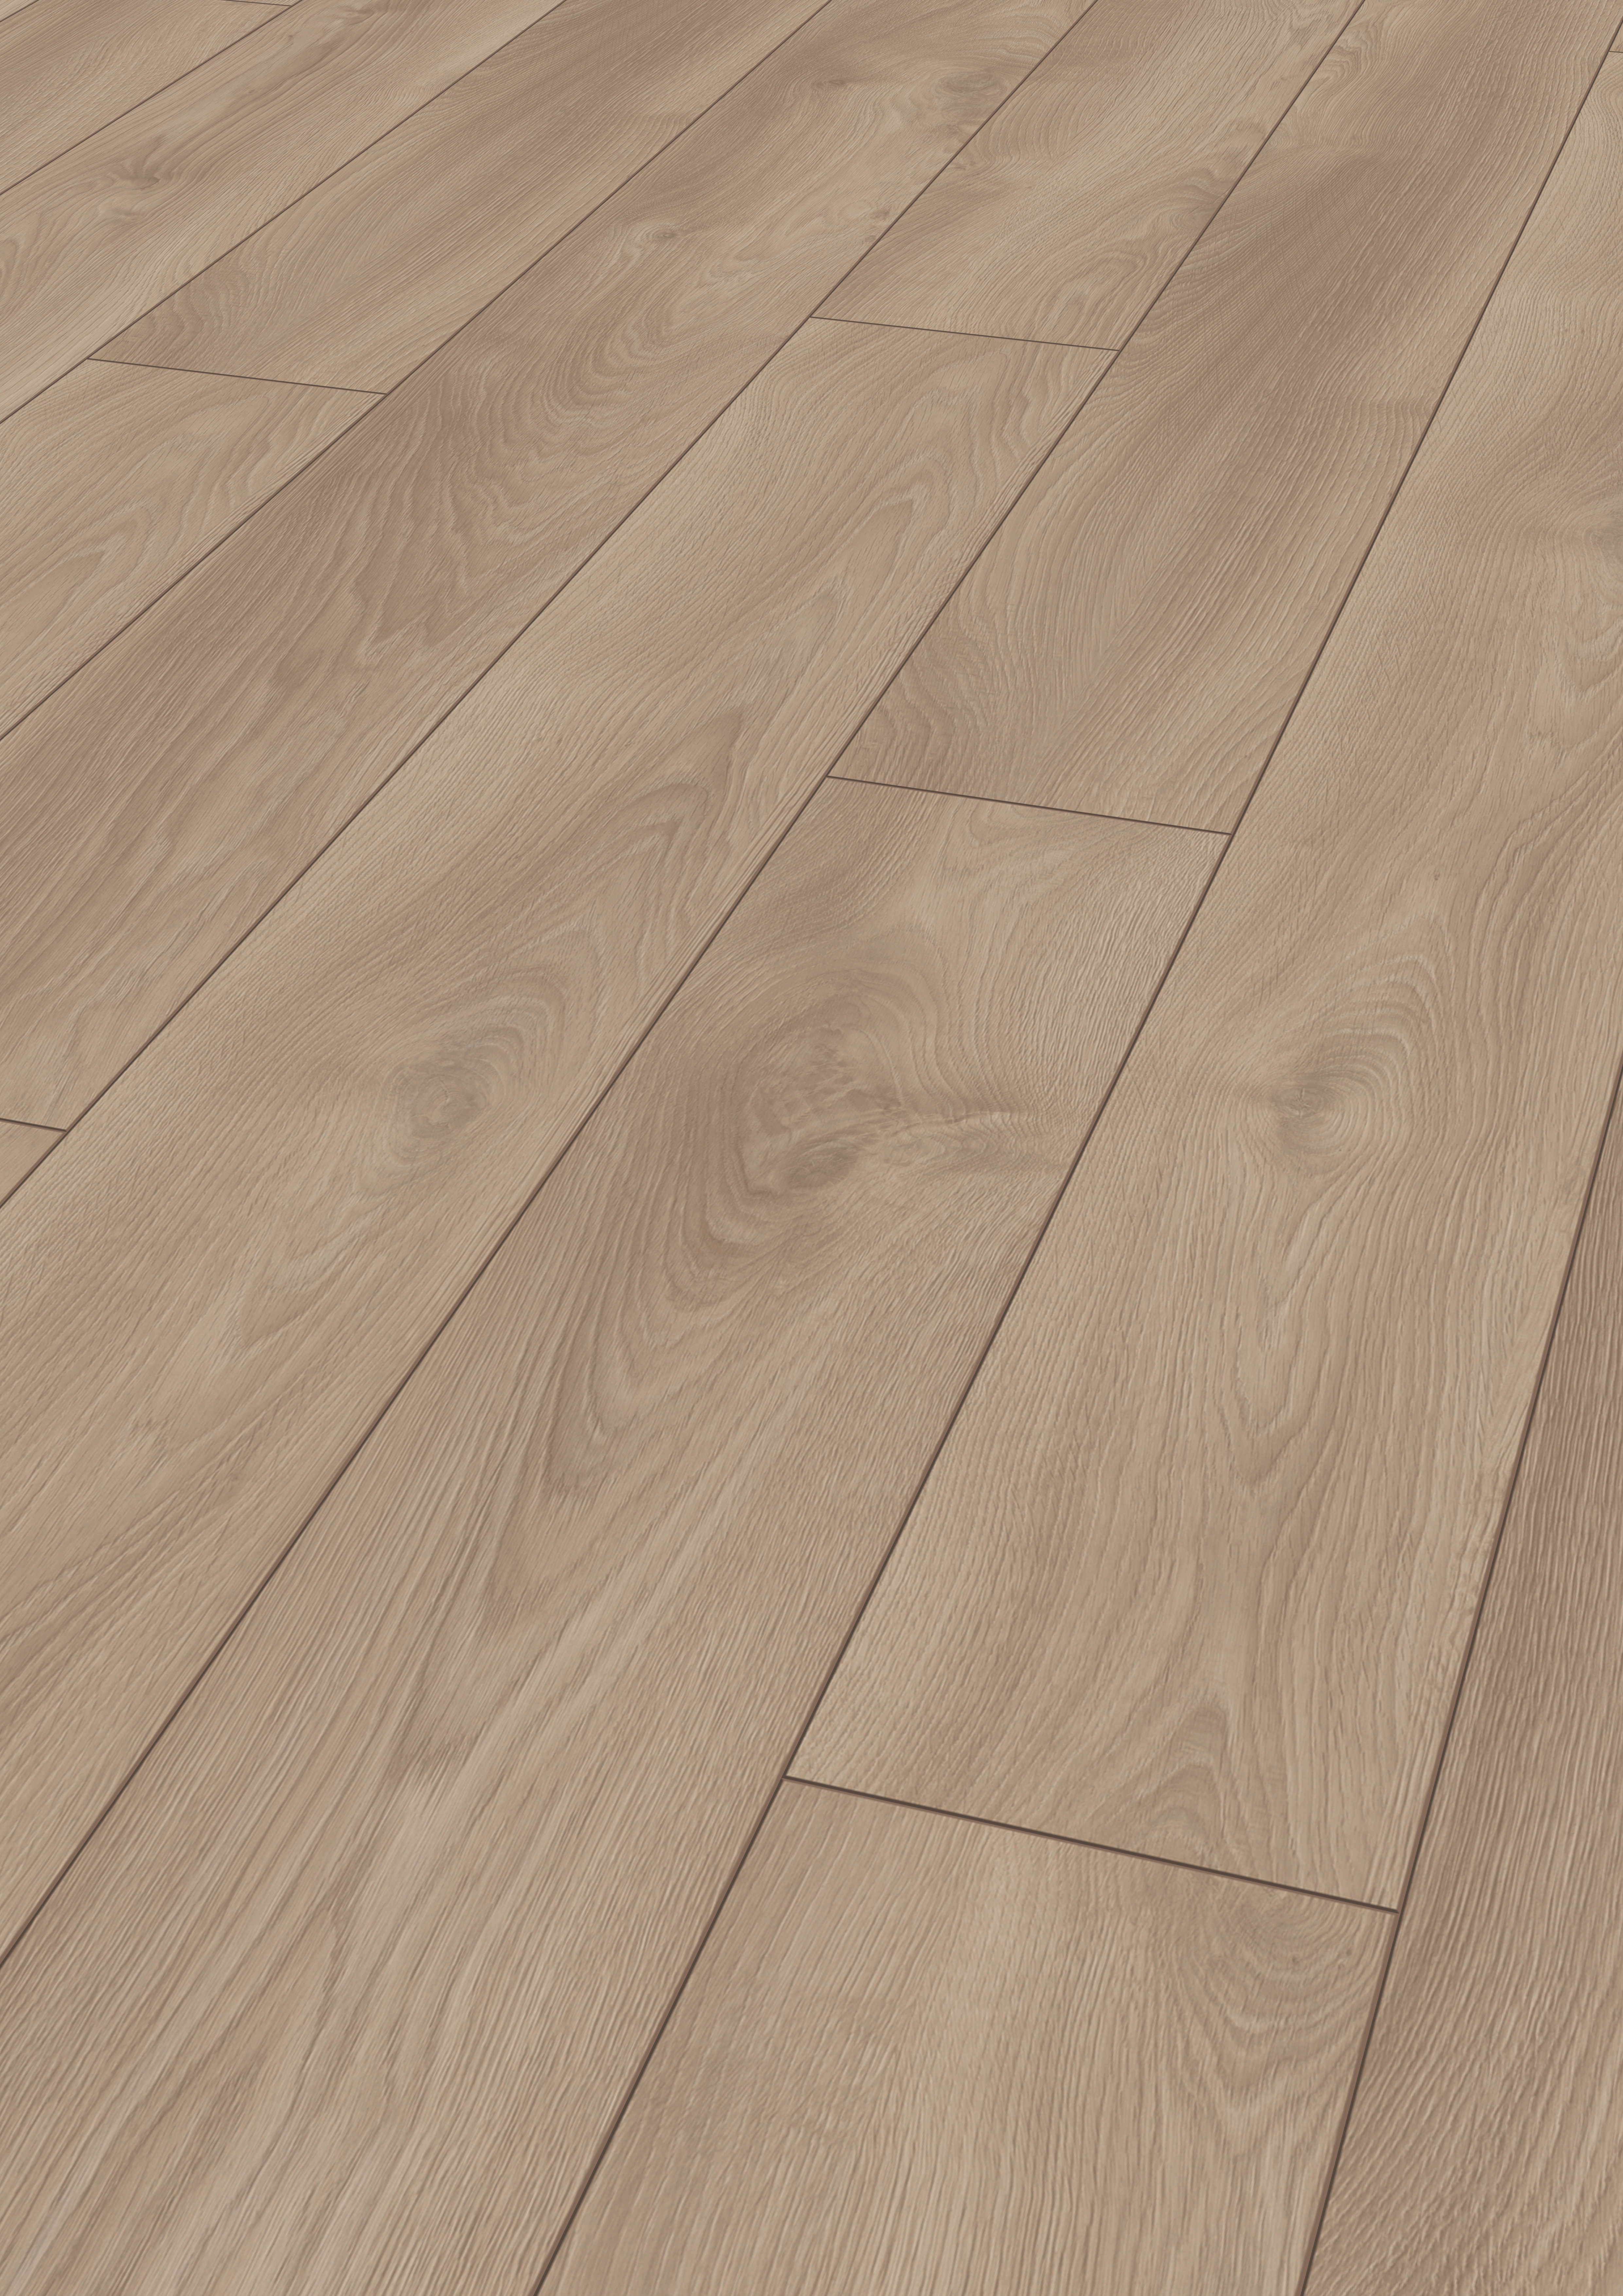 Kronotex Laminate Flooring mullen home springdale oak 8 mm thick x 618 in wide x 5079 in Download Picture